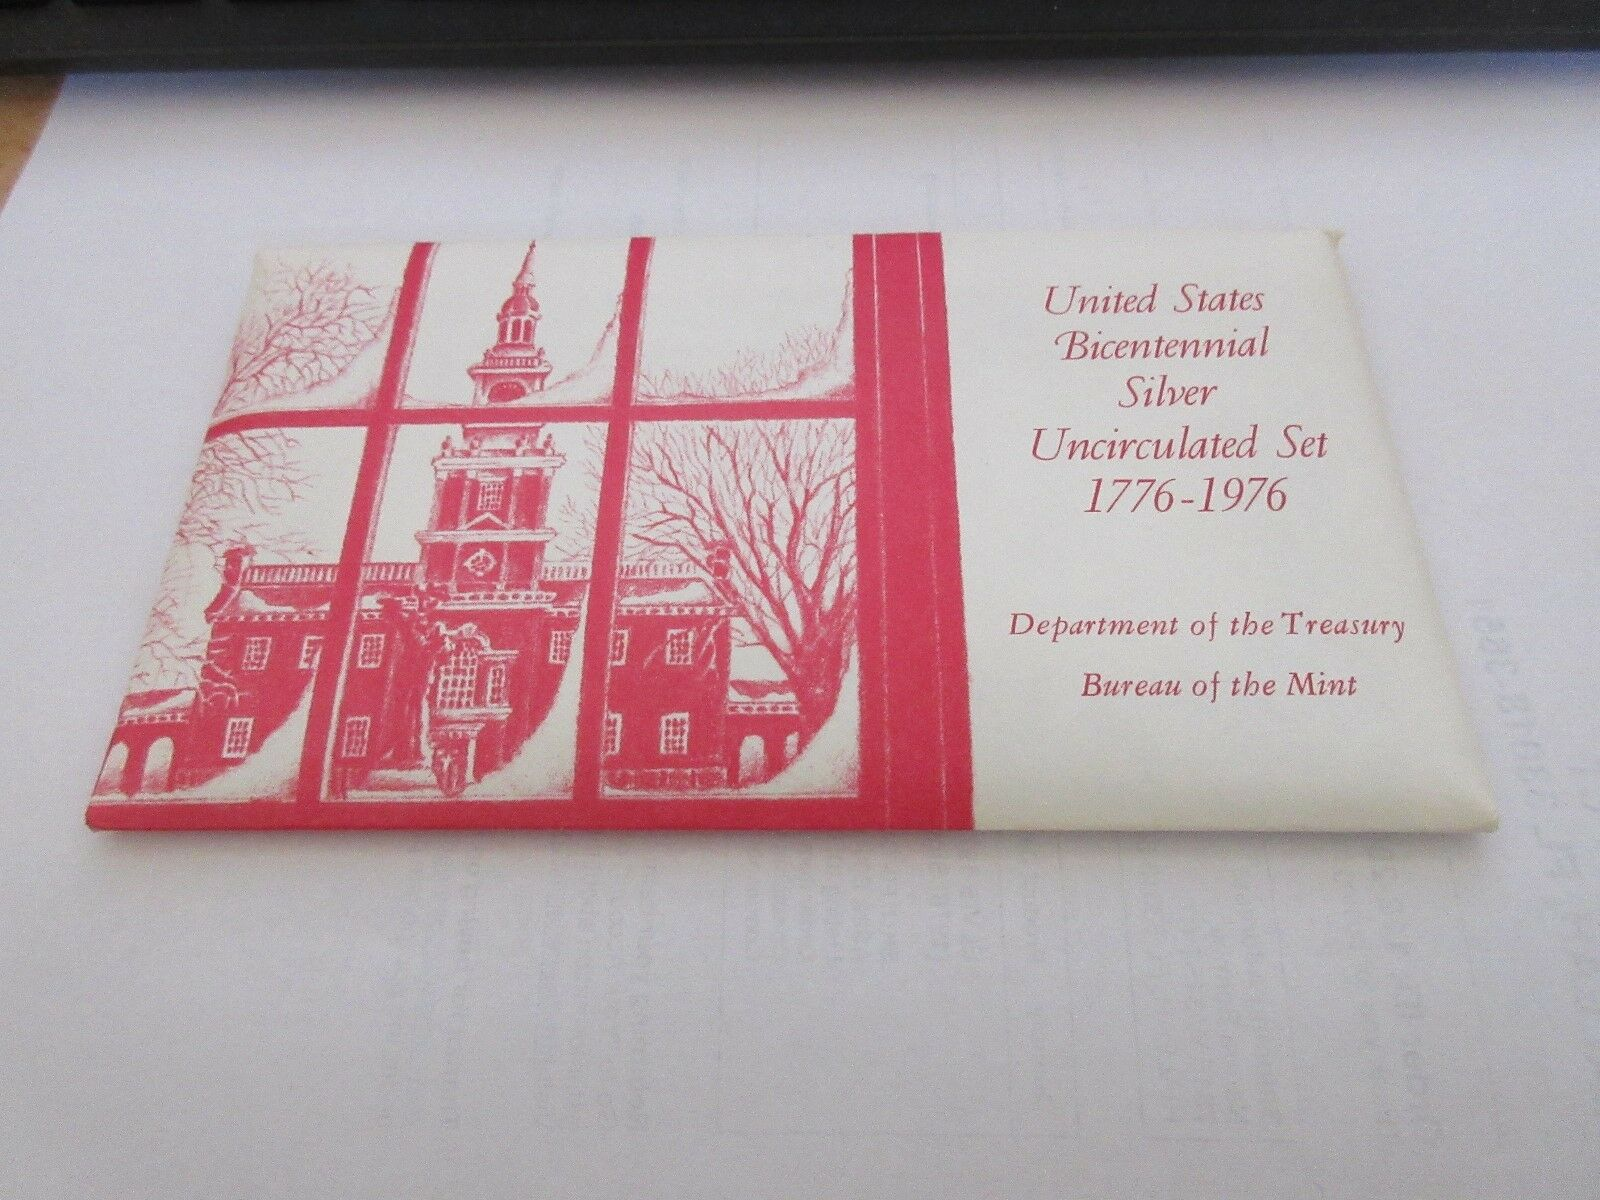 United States Bicentennial Silver Uncirculated Set 1976